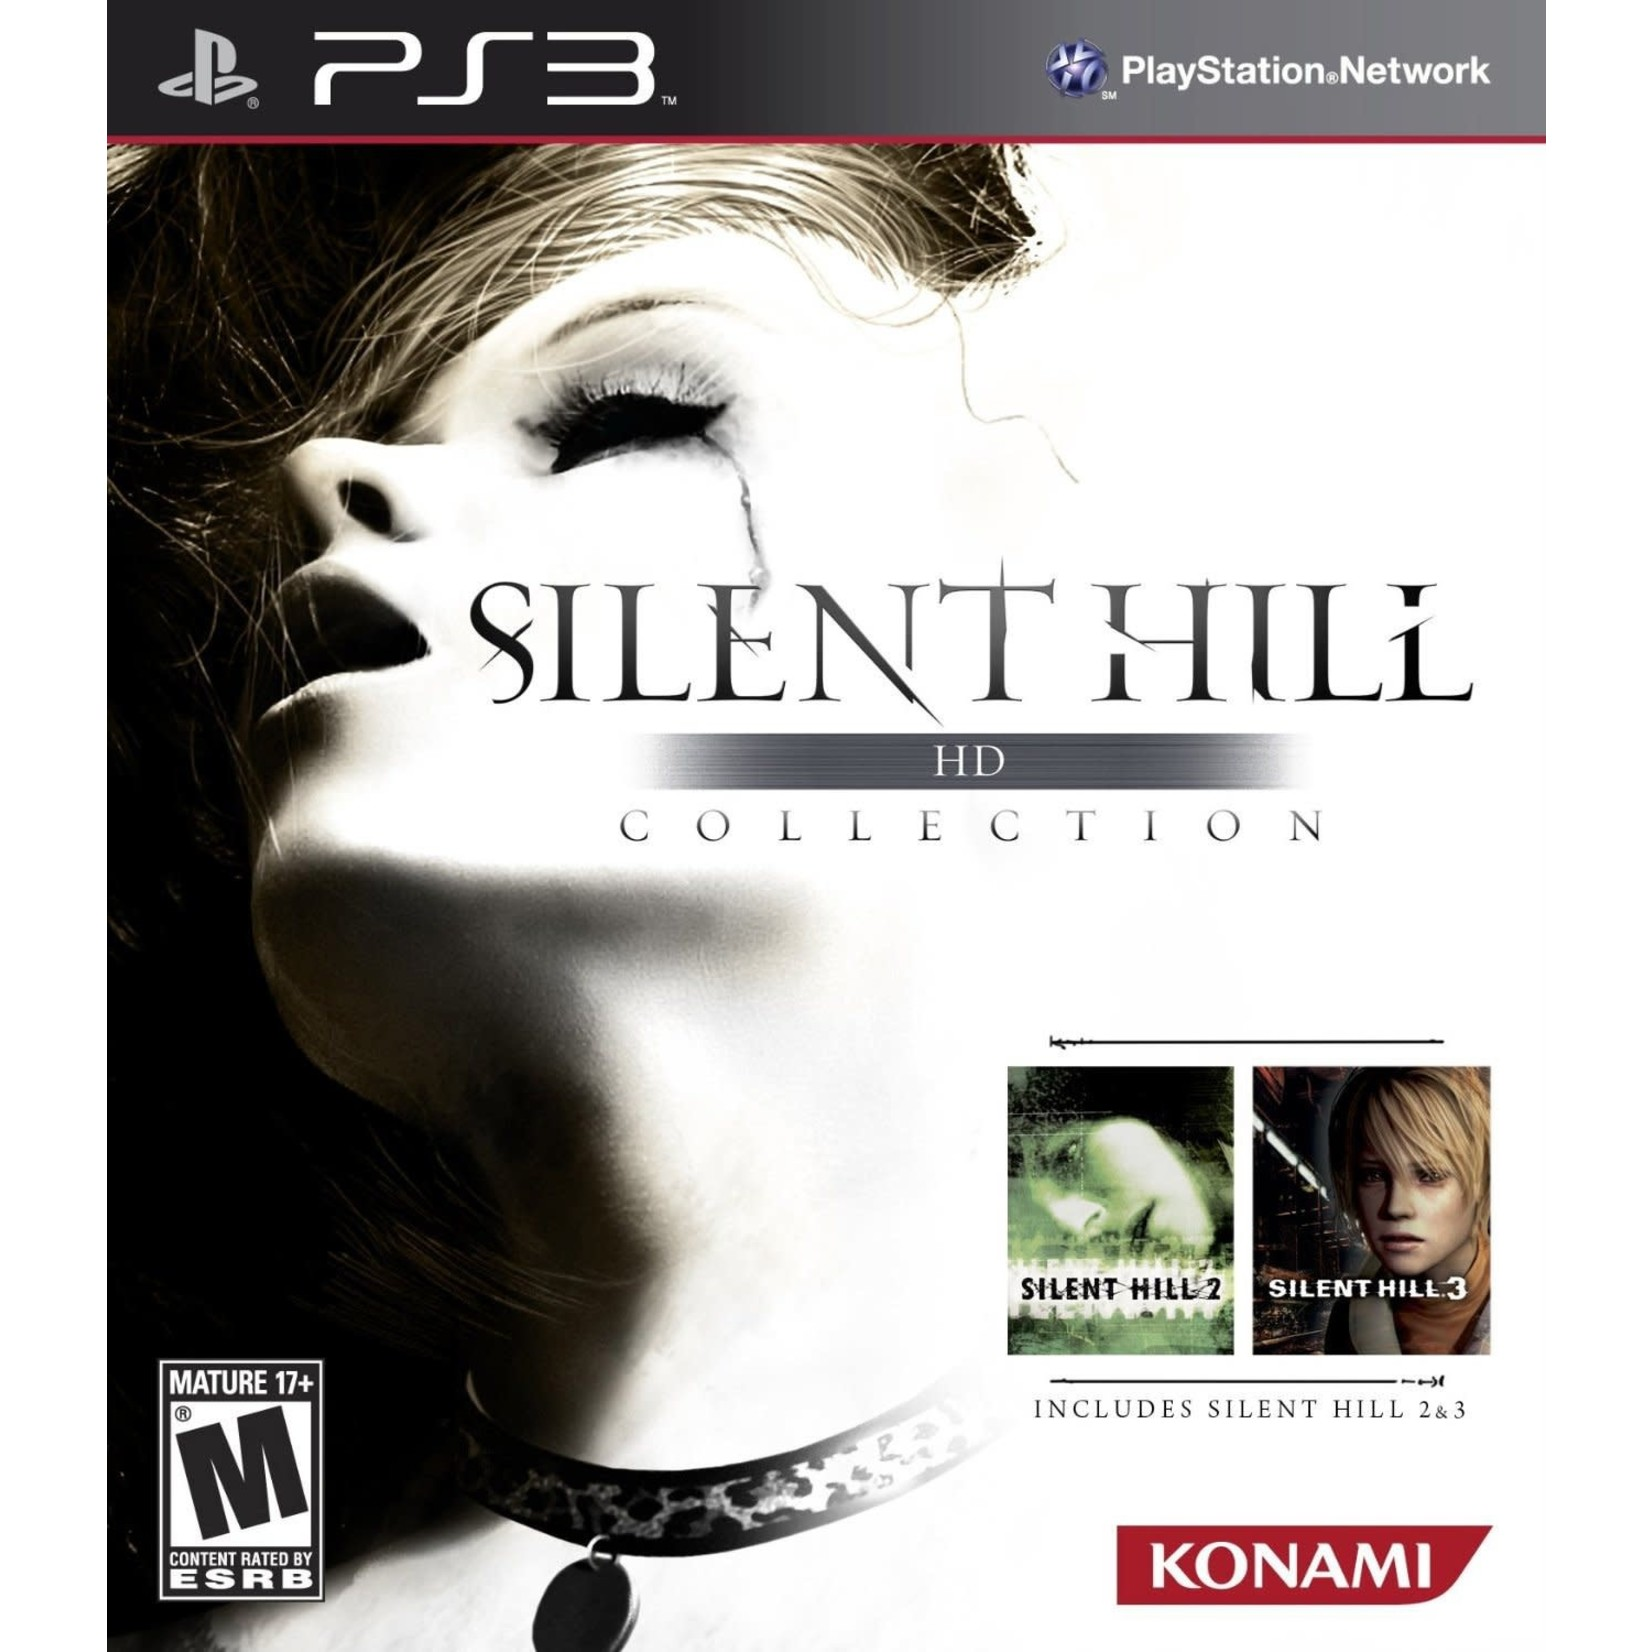 PS3-Silent Hill HD Collection